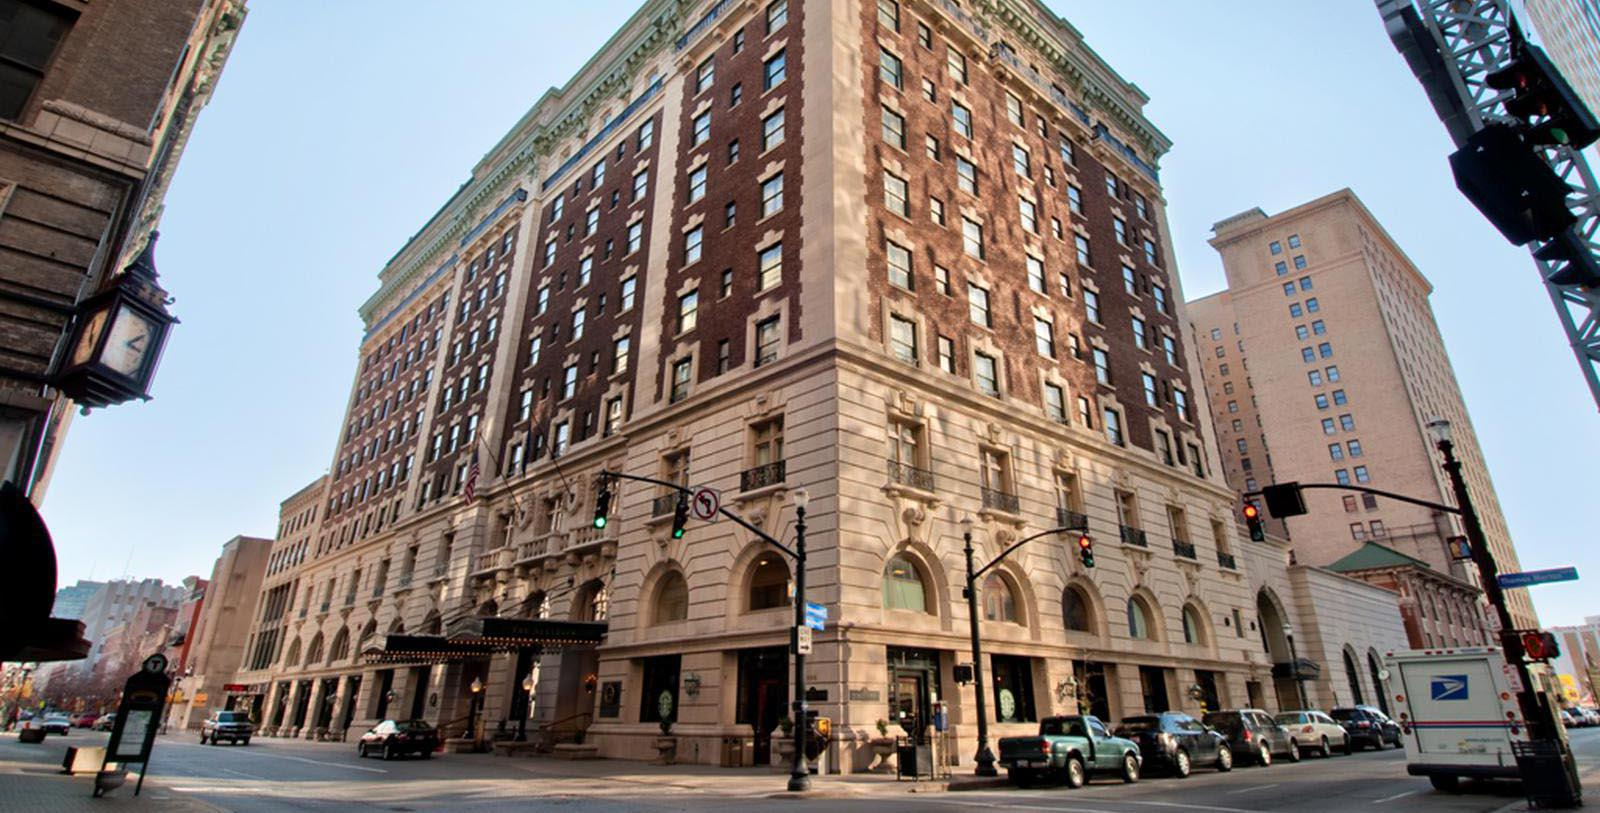 Image of Hotel Exterior The Seelbach Hilton Louisville, 1905, Member of Historic Hotels of America, in Louisville, Kentucky, Overview